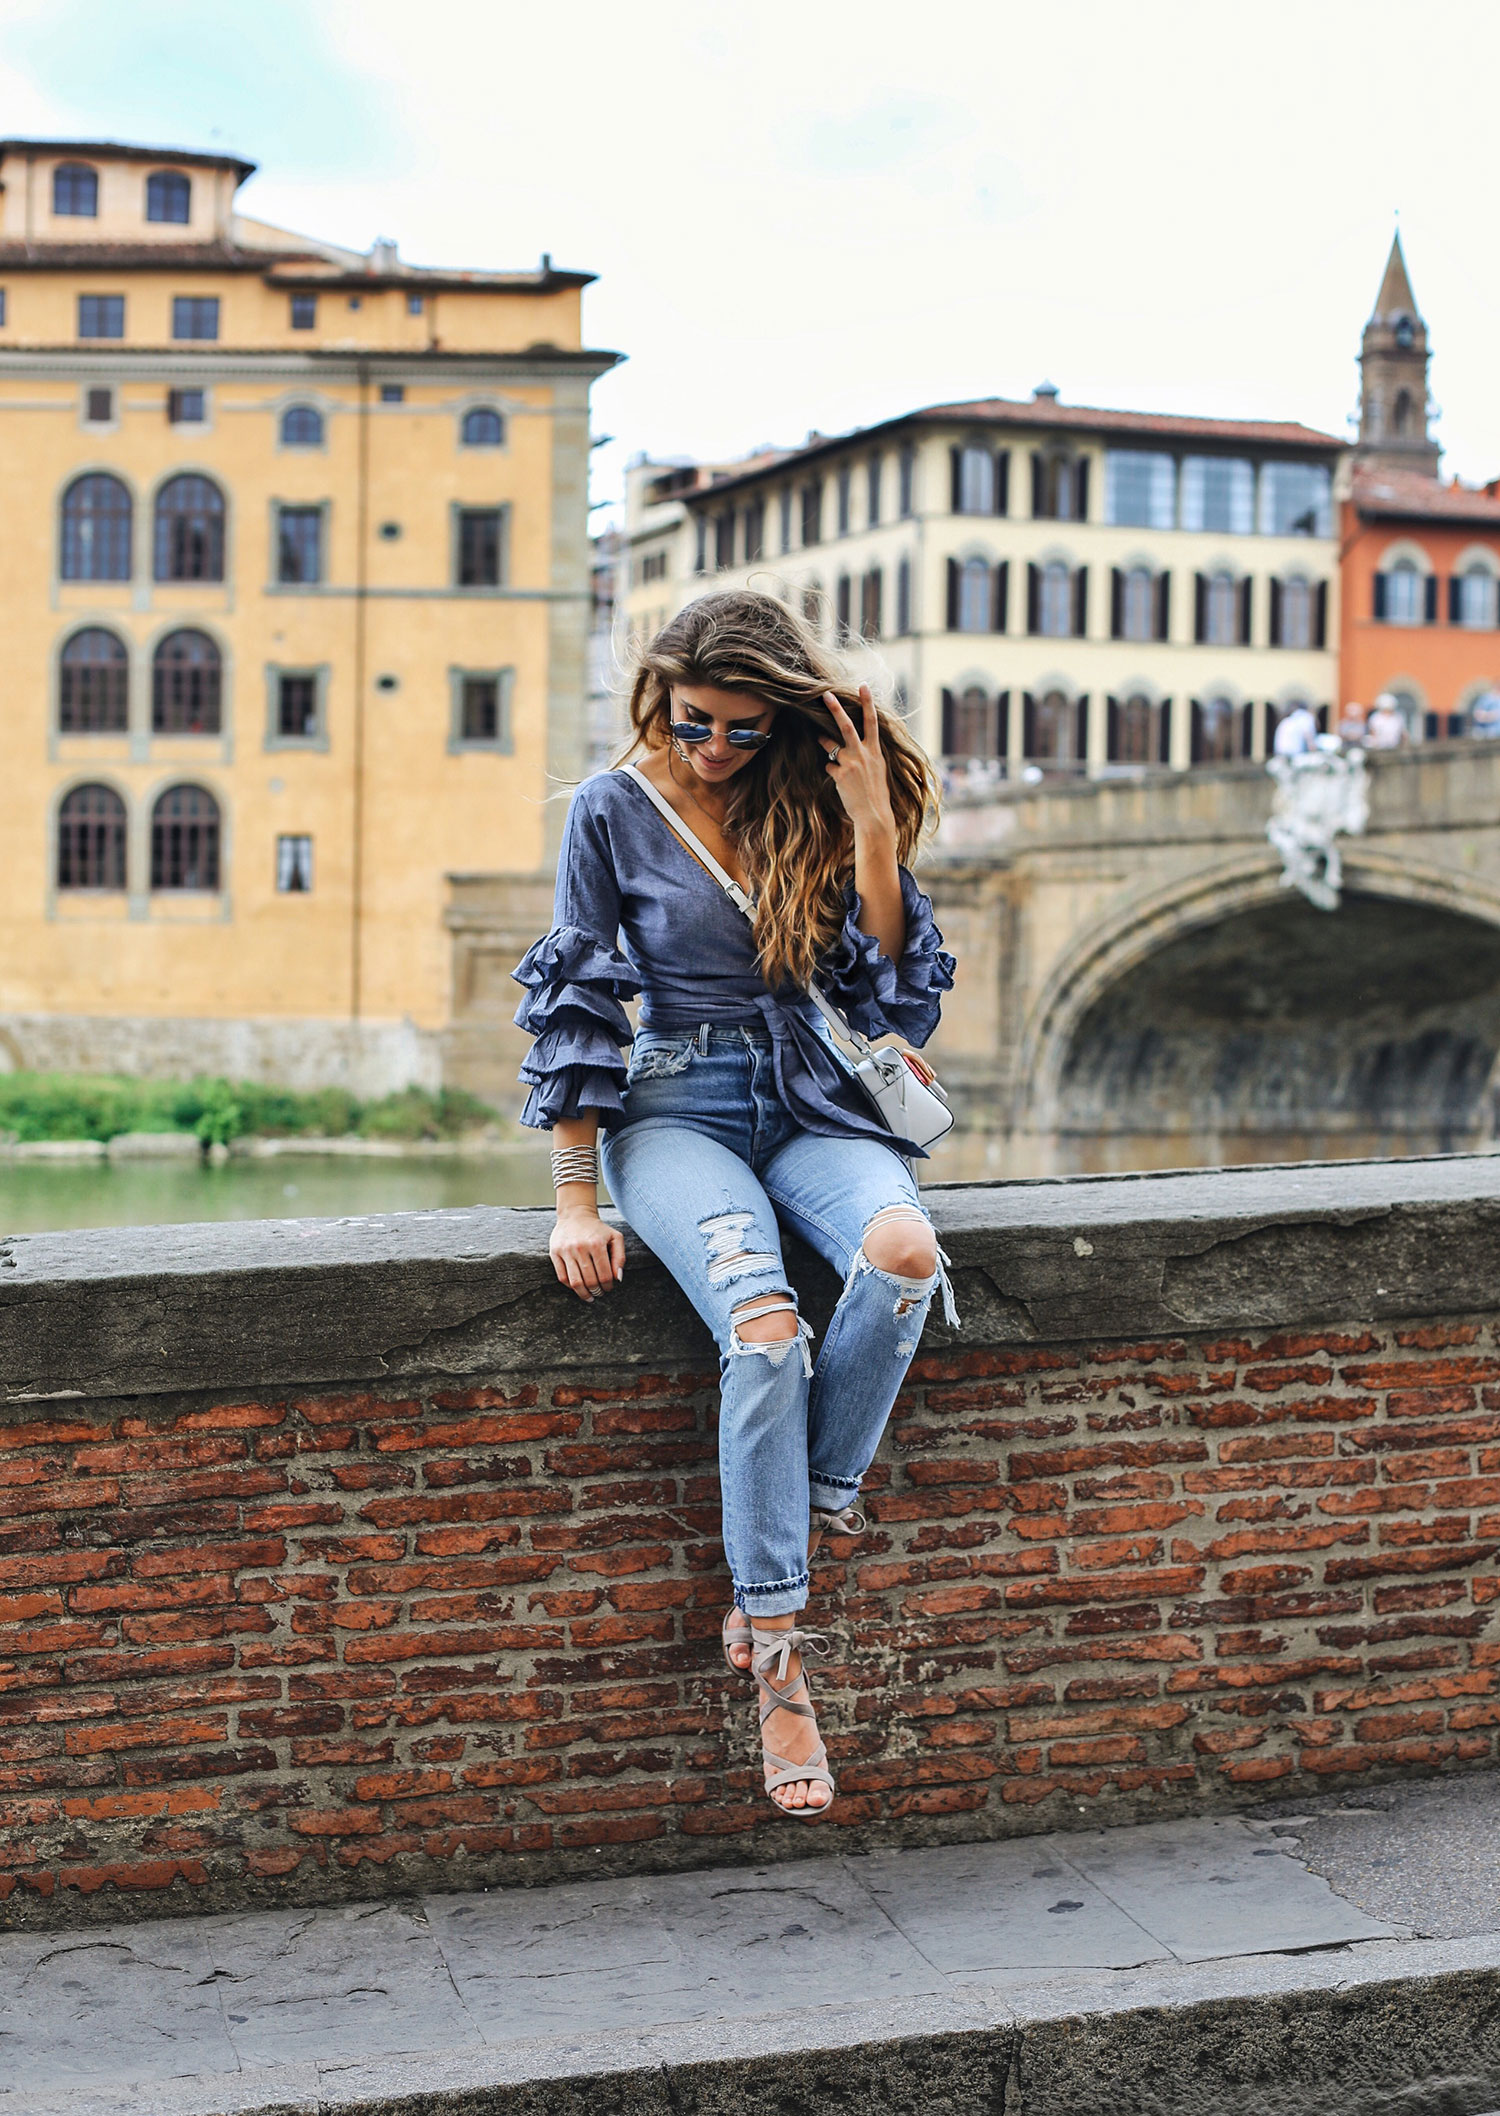 Fashion and lifestyle blogger Adelina Perrin of The Charming Olive wearing Tularosa wrap top and Grlfrnd denim jeans